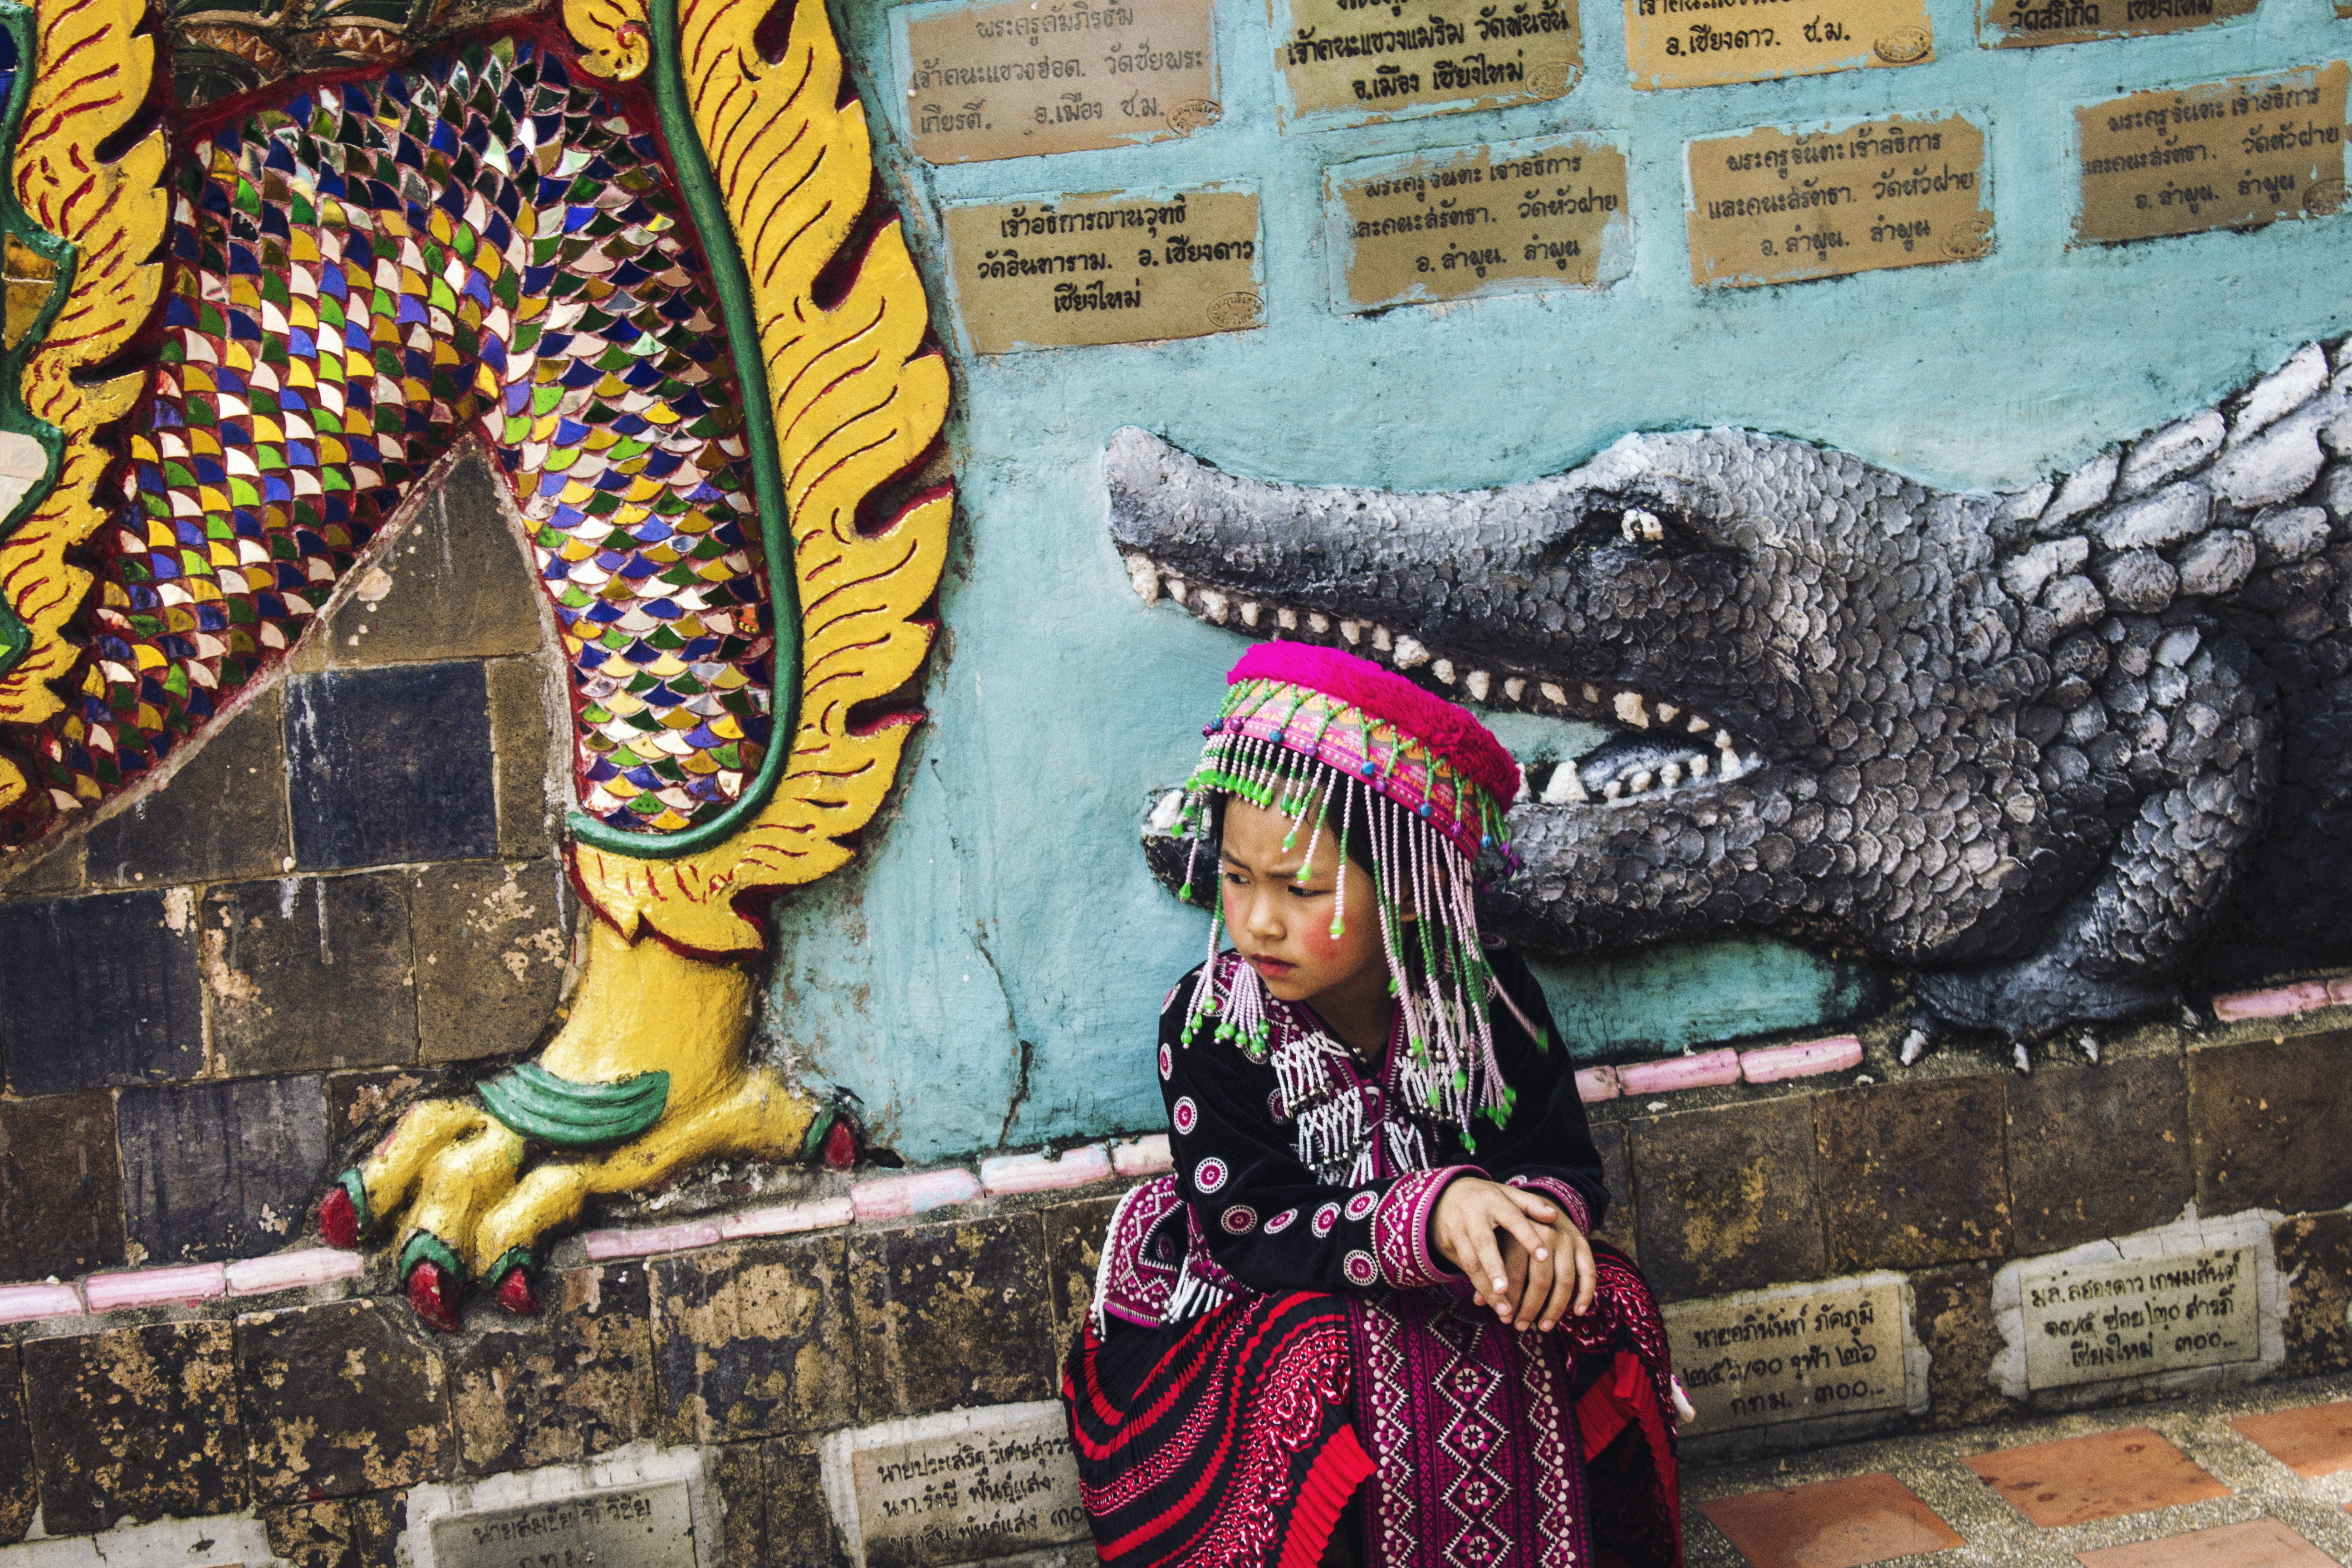 A child wearing a headdress in front of a wall of cultural imagery in Doi Suthep